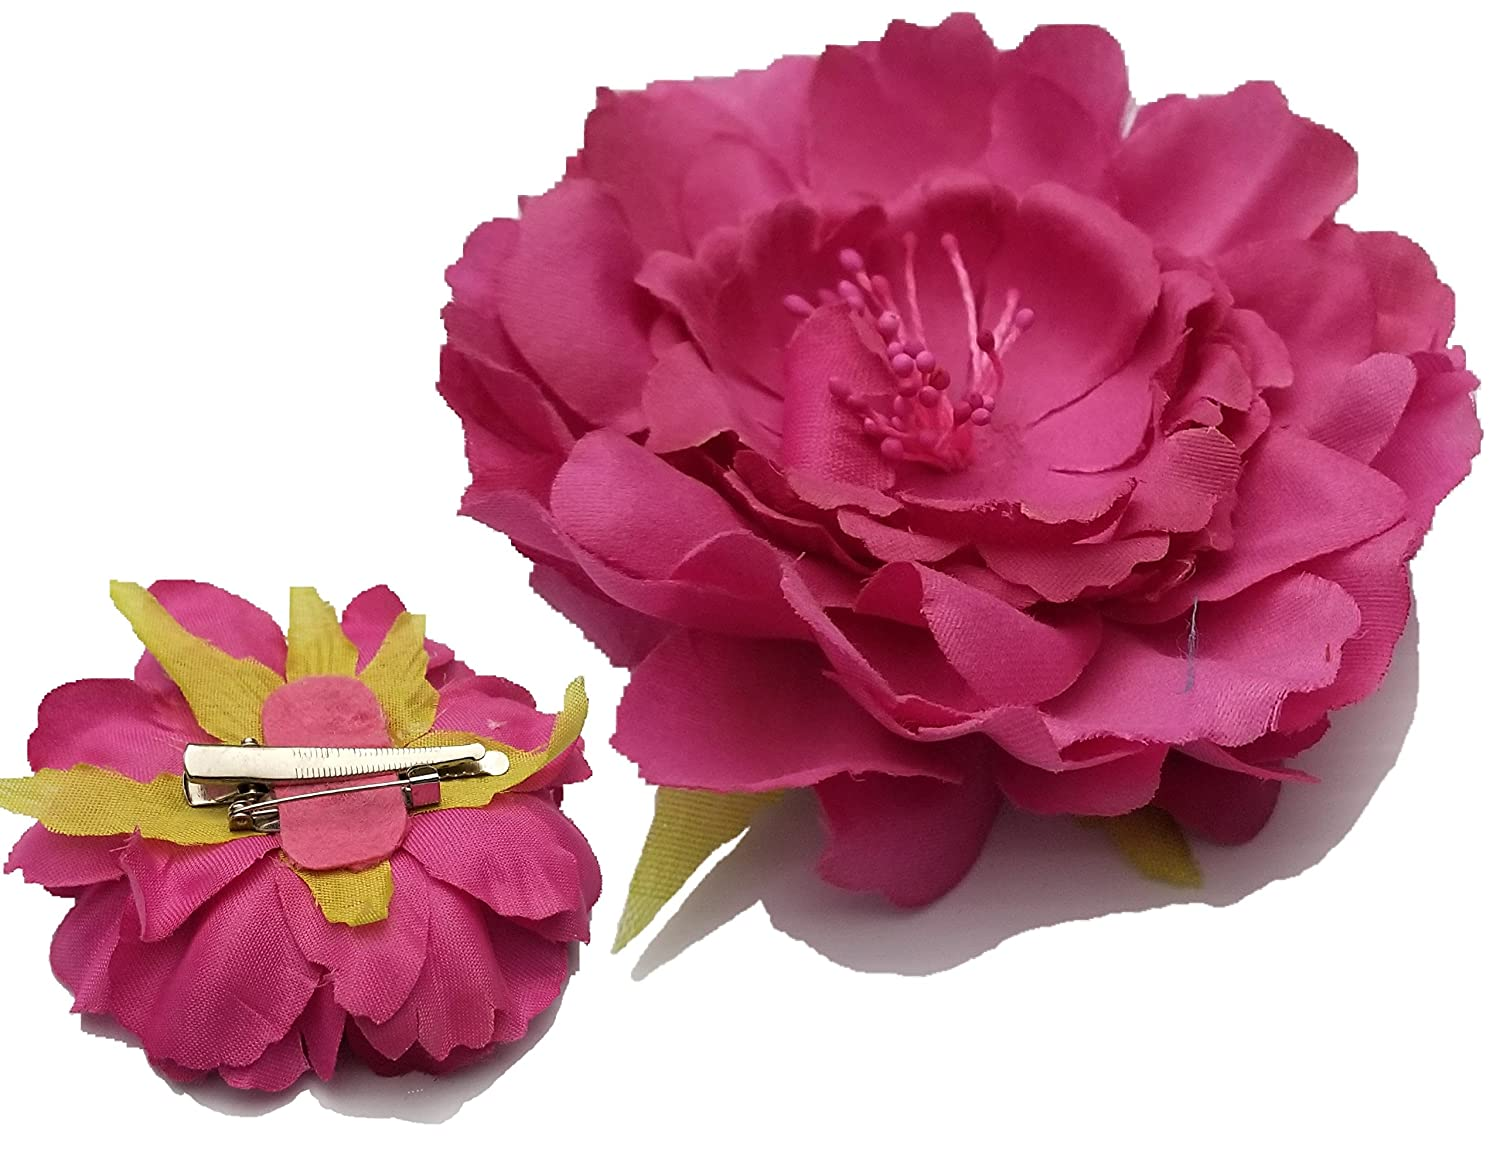 310bebb61 Amazon Com Flower Rose Hair Clips Corsage Brooch Hairpins Hair